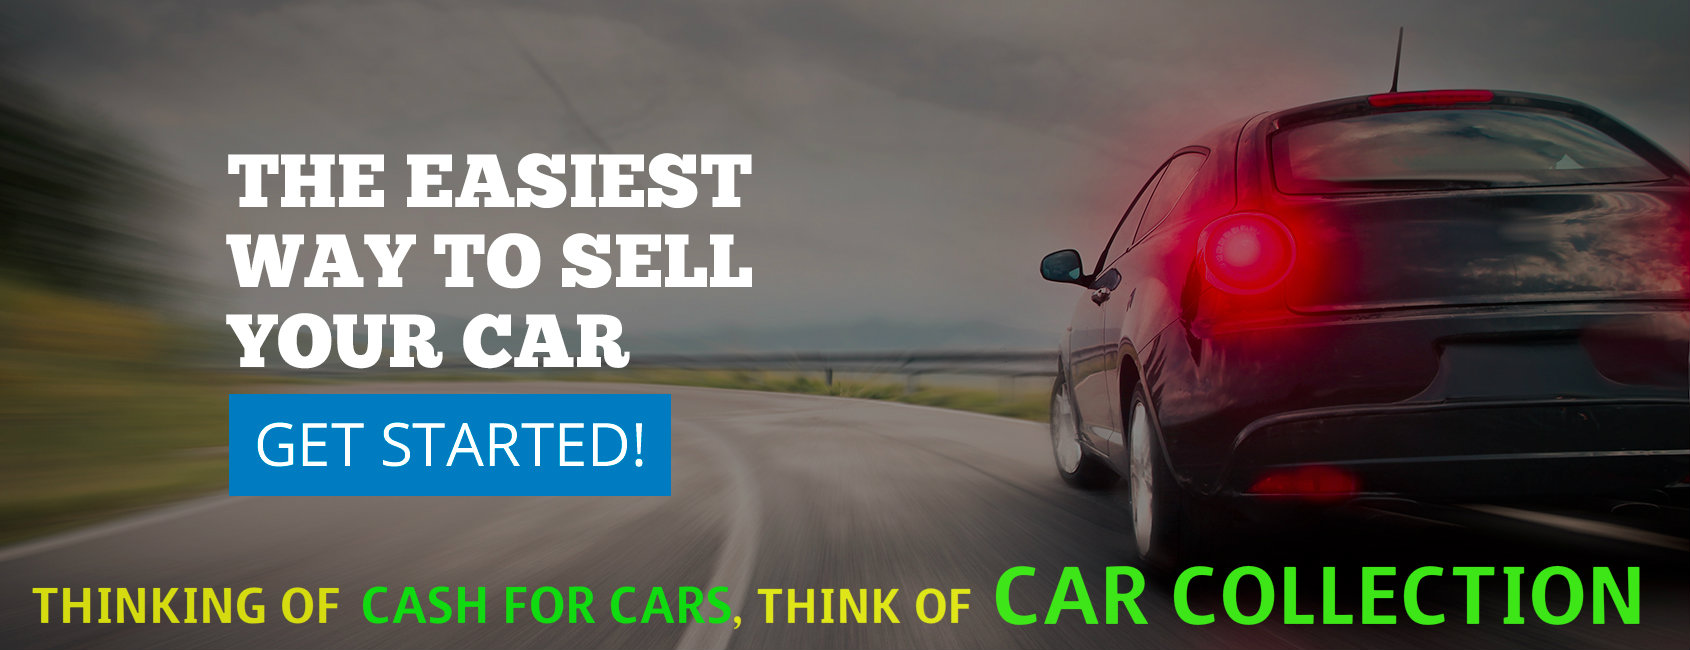 cash for cars - used car buyers New Zealand - Sell car online